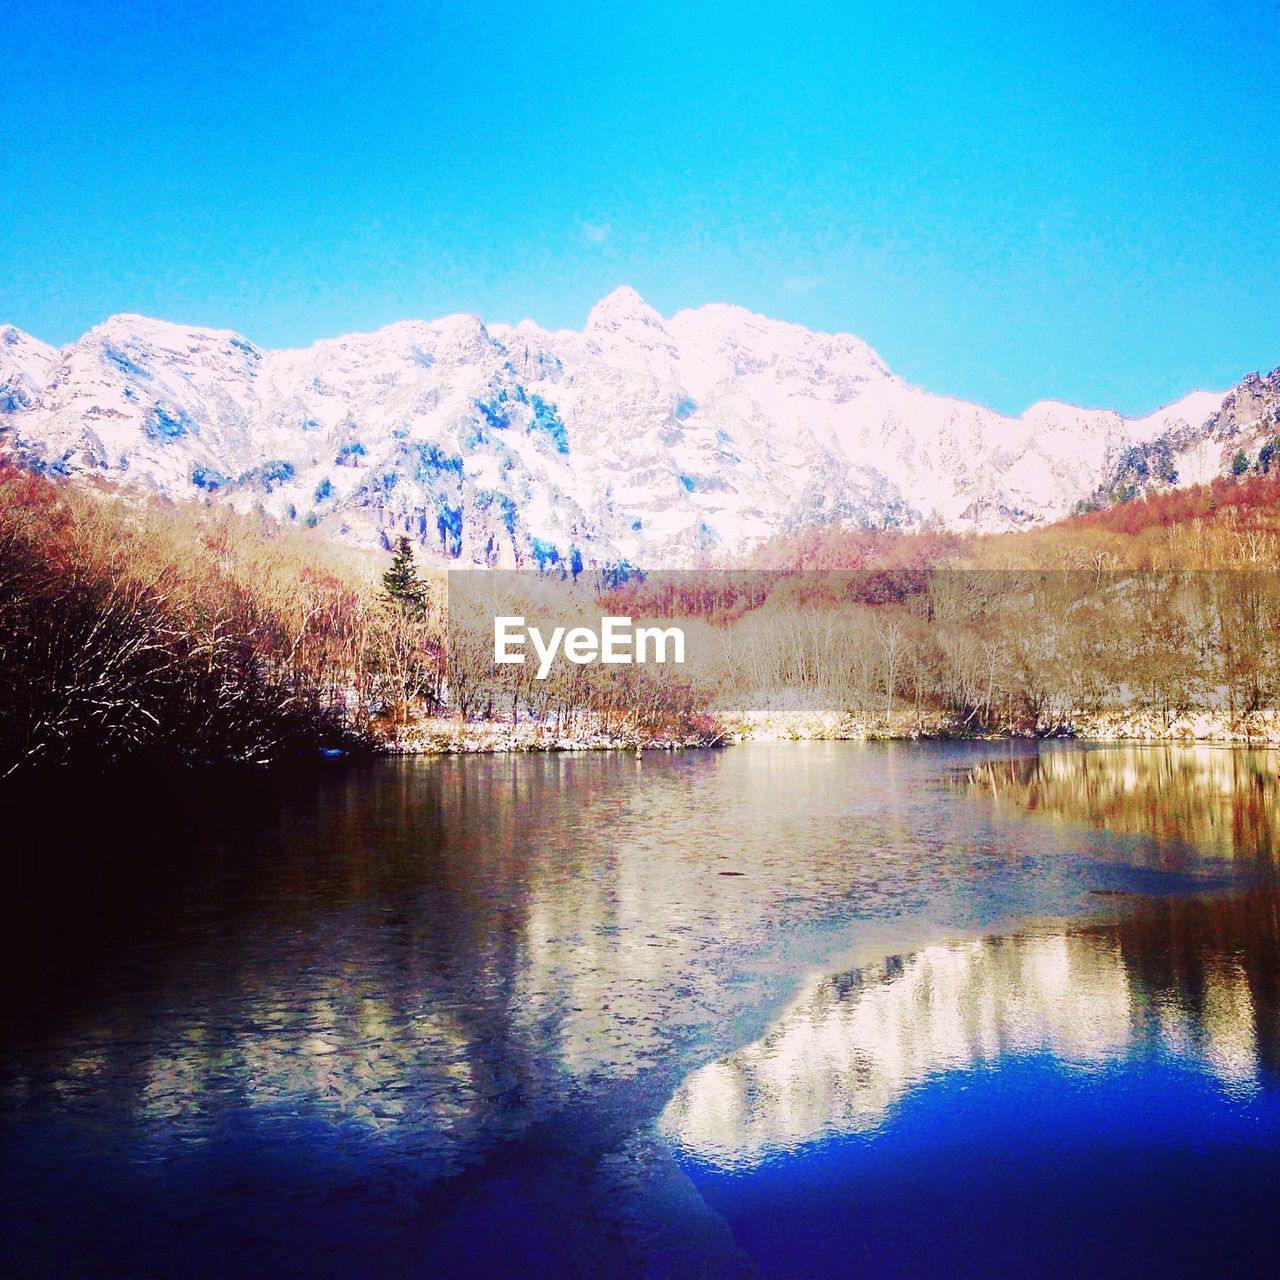 reflection, mountain, tranquil scene, scenics, lake, tranquility, beauty in nature, nature, water, no people, idyllic, outdoors, tree, day, mountain range, waterfront, blue, landscape, travel destinations, cold temperature, snow, sky, clear sky, wilderness area